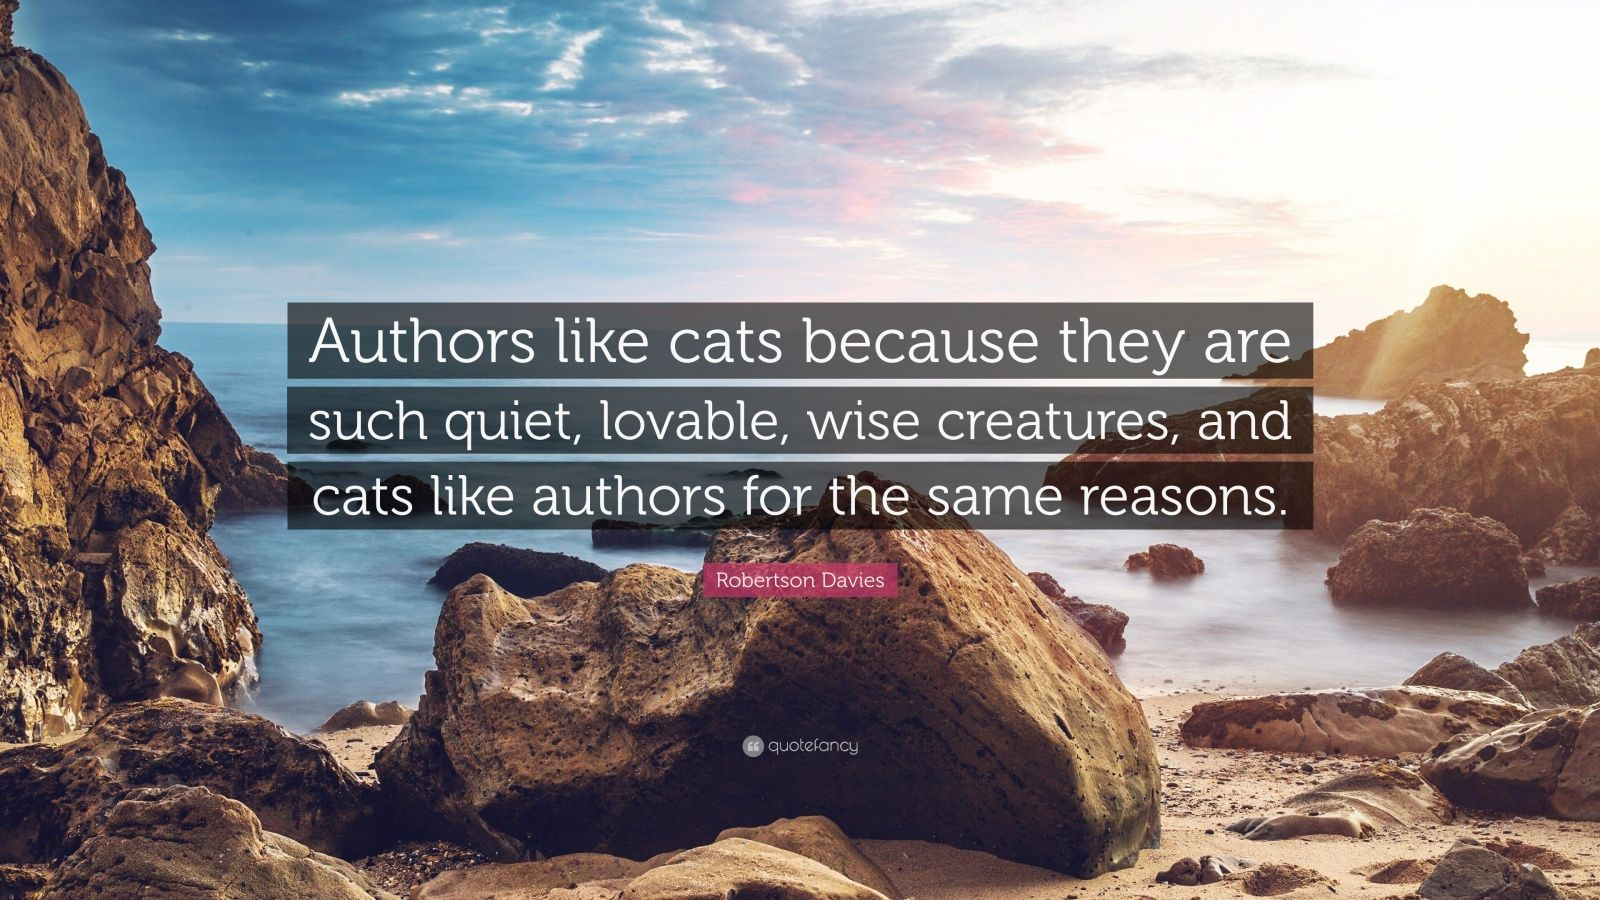 """Robertson Davies Quote: """"Authors like cats because they are such quiet, lovable, wise creatures, and cats like authors for the same reasons."""""""